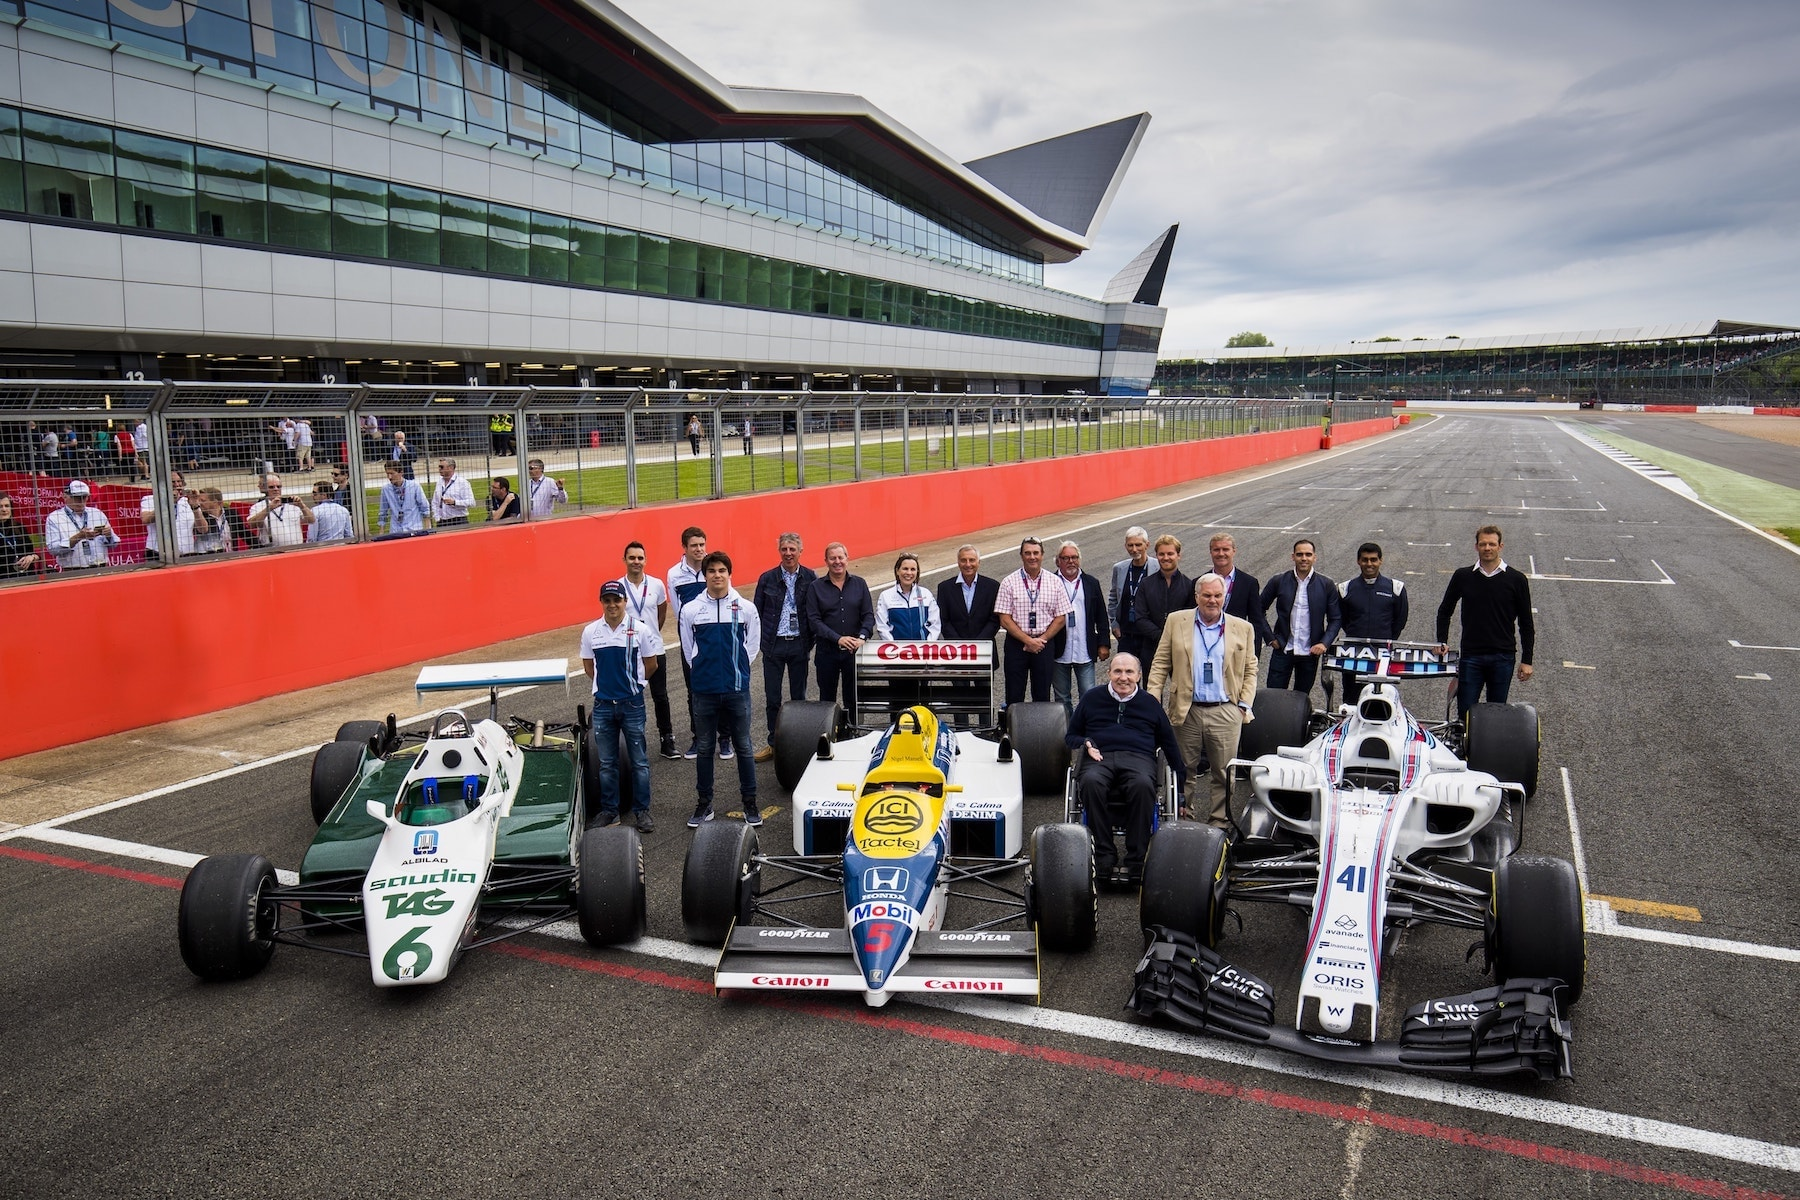 Frank Williams cars at Silverstone 2017 copy.jpg